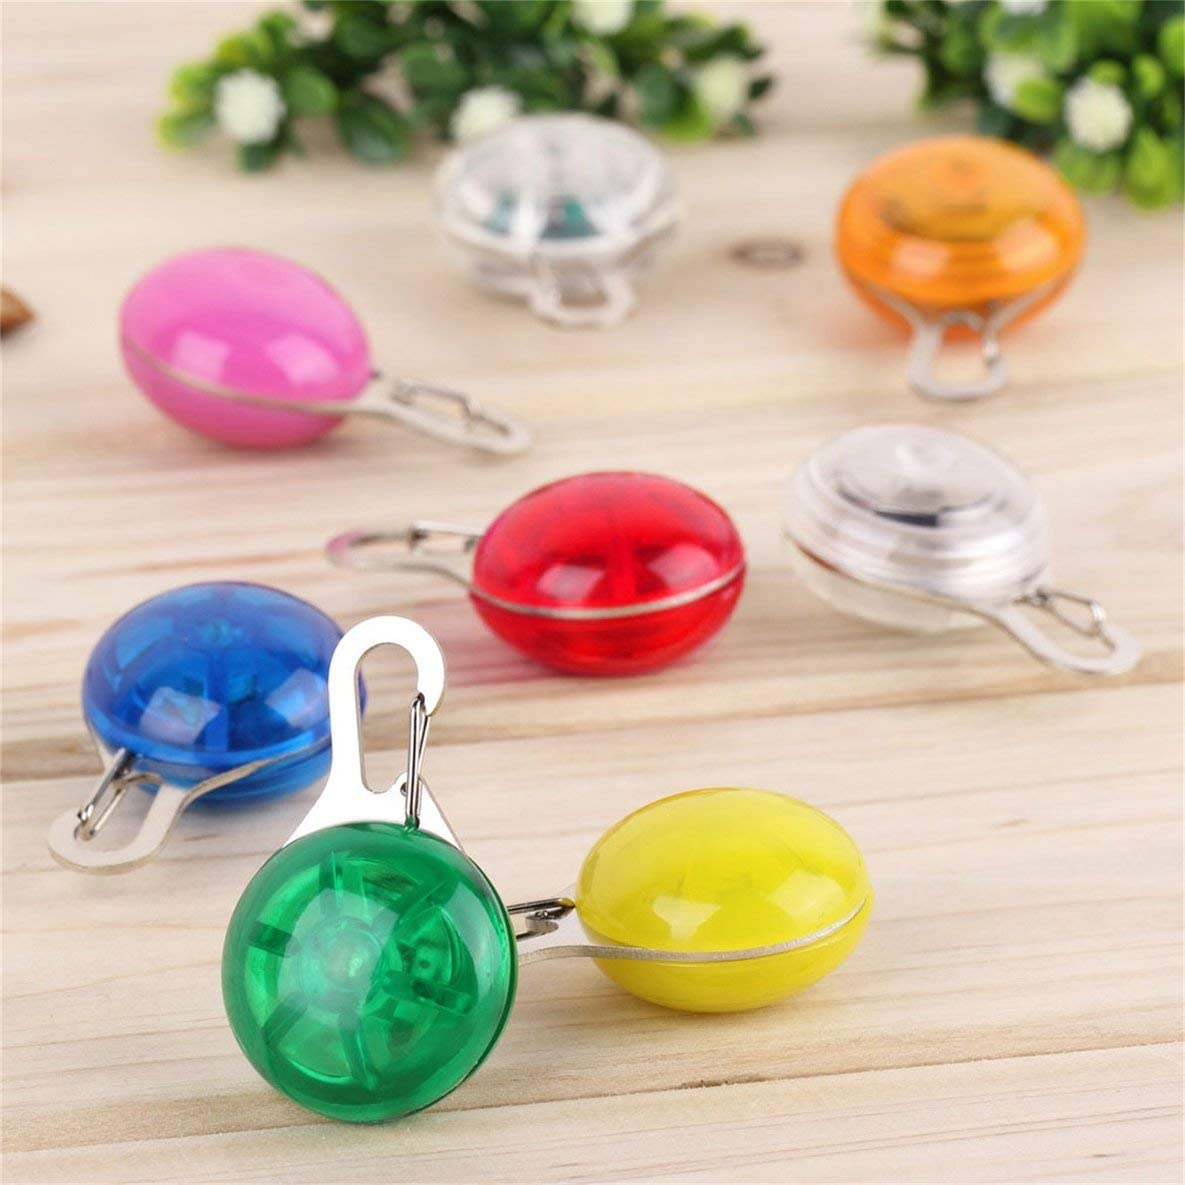 Moliies Super Bright Dogs LED Pendant Portable Pet Necklace Durable Night Light Flashing Collar Universal Pet Supplies